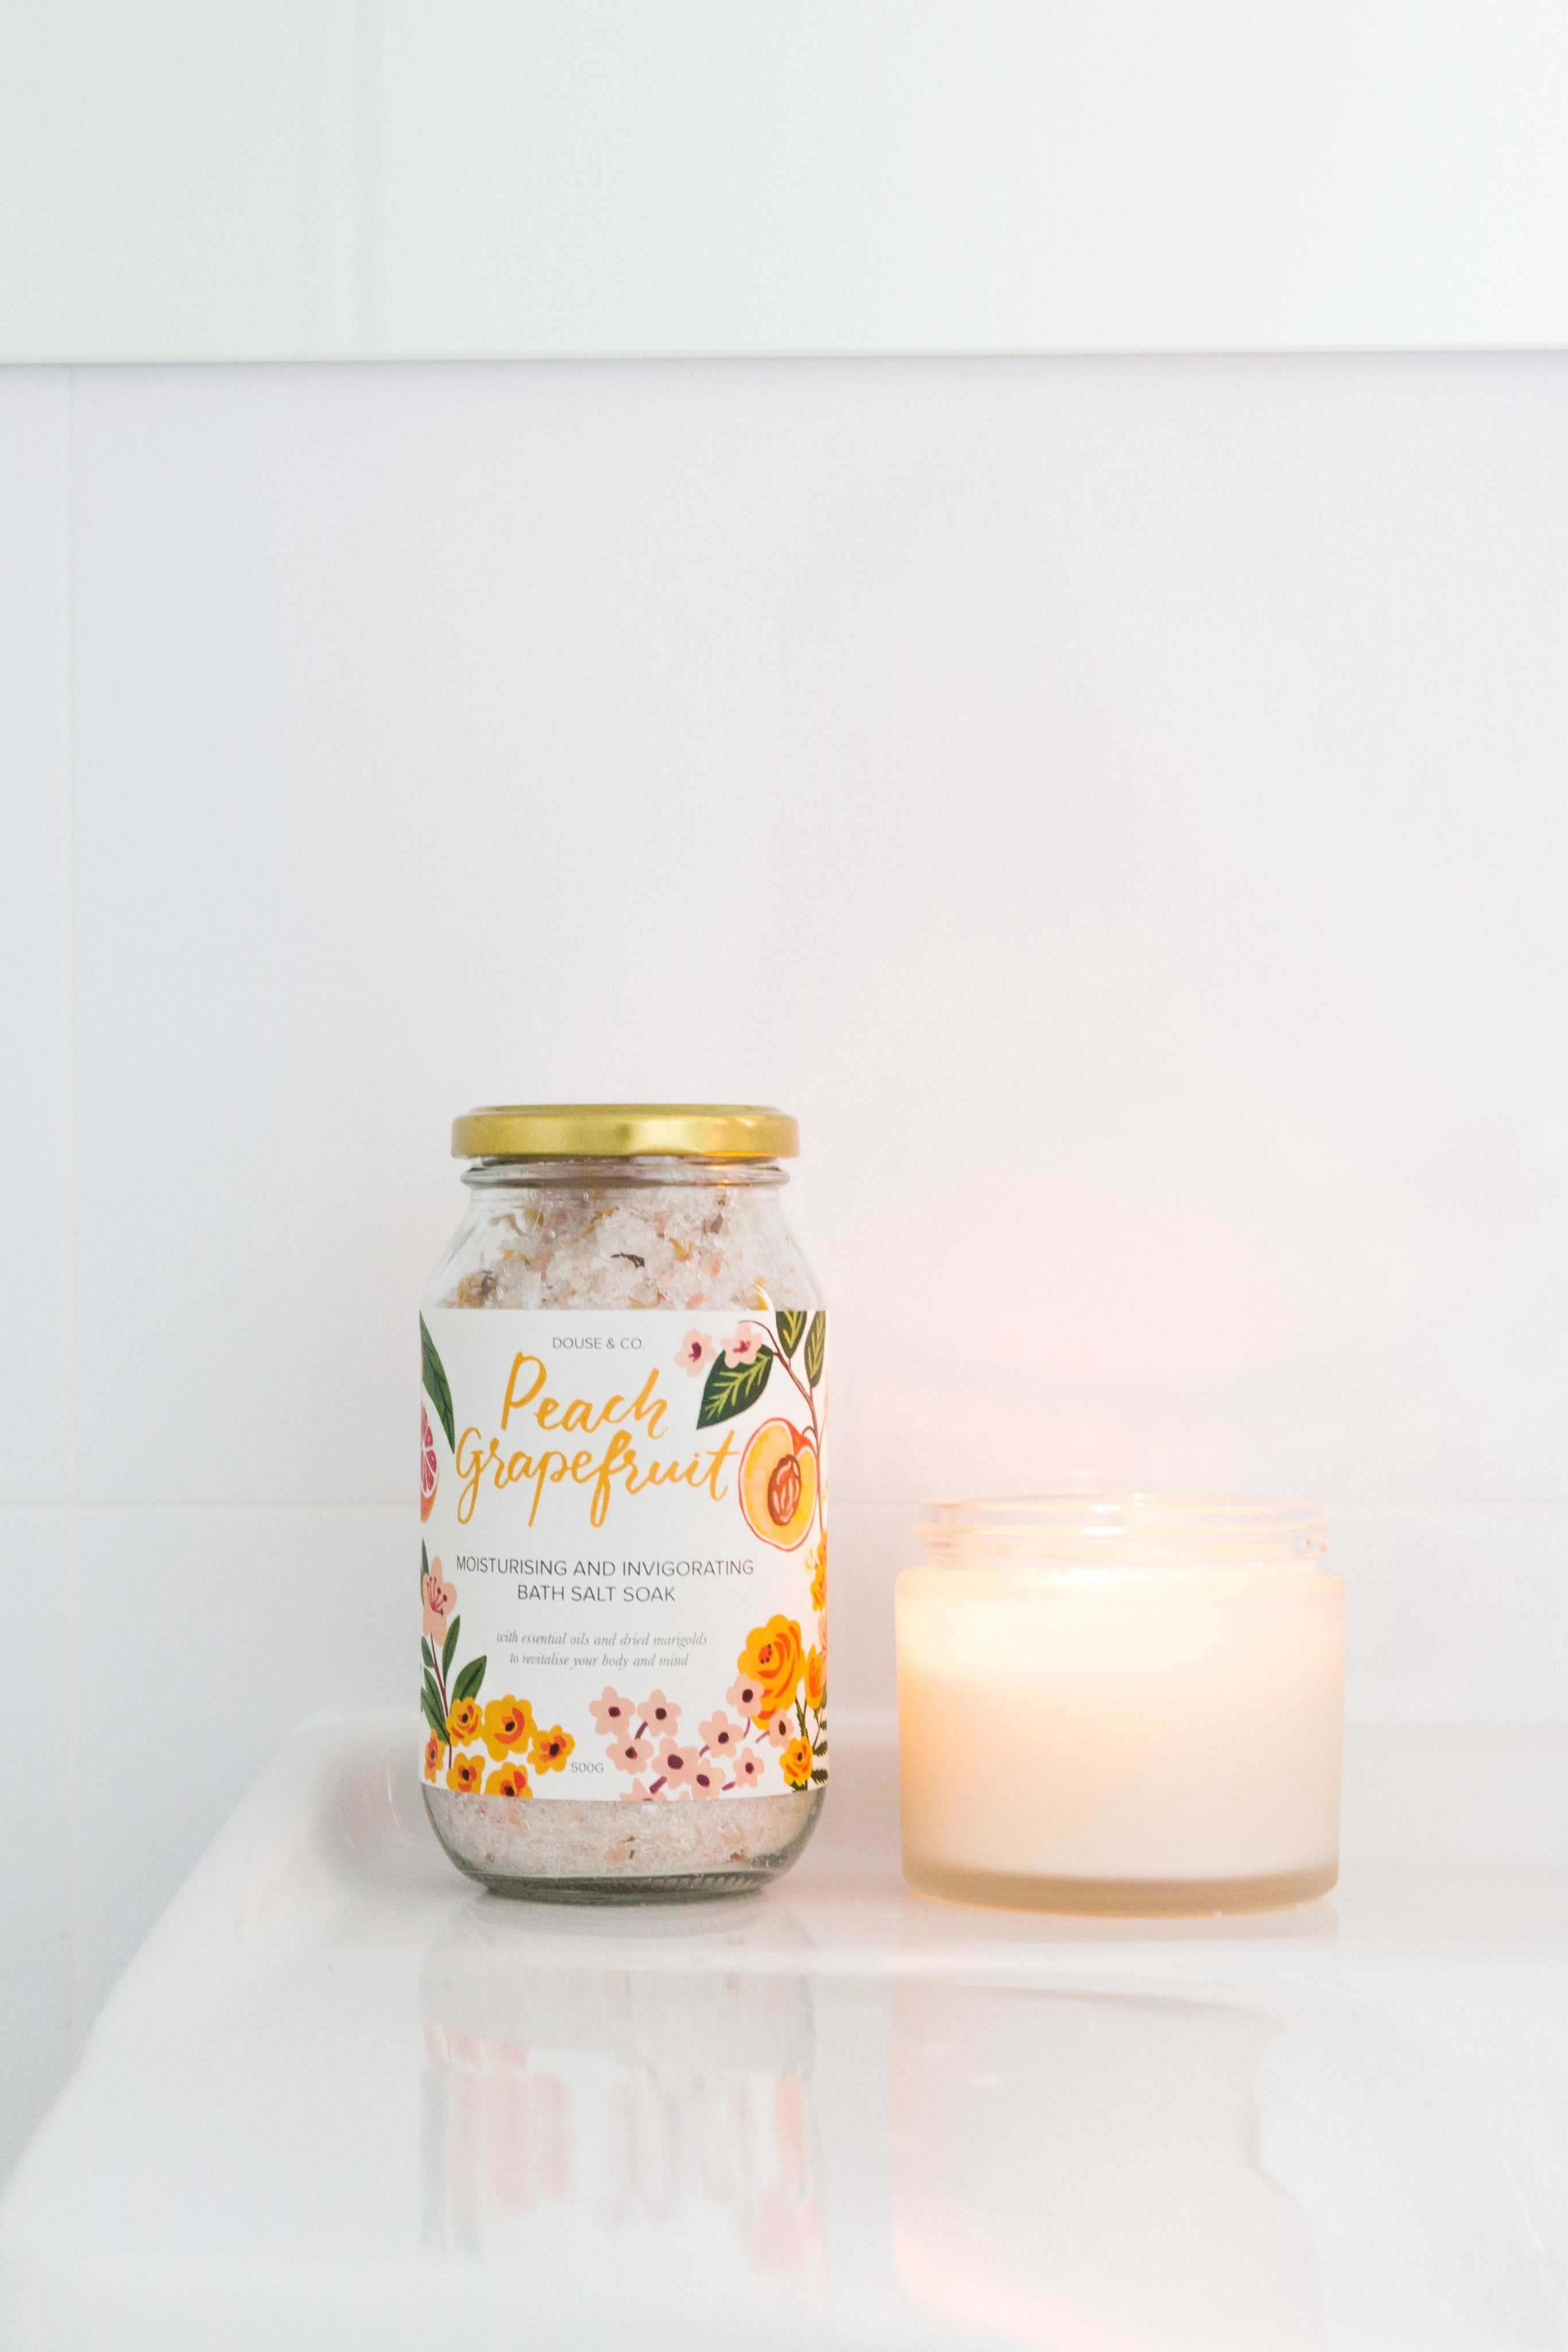 Peach and Grapefruit Invigorating Bath Salt Soak